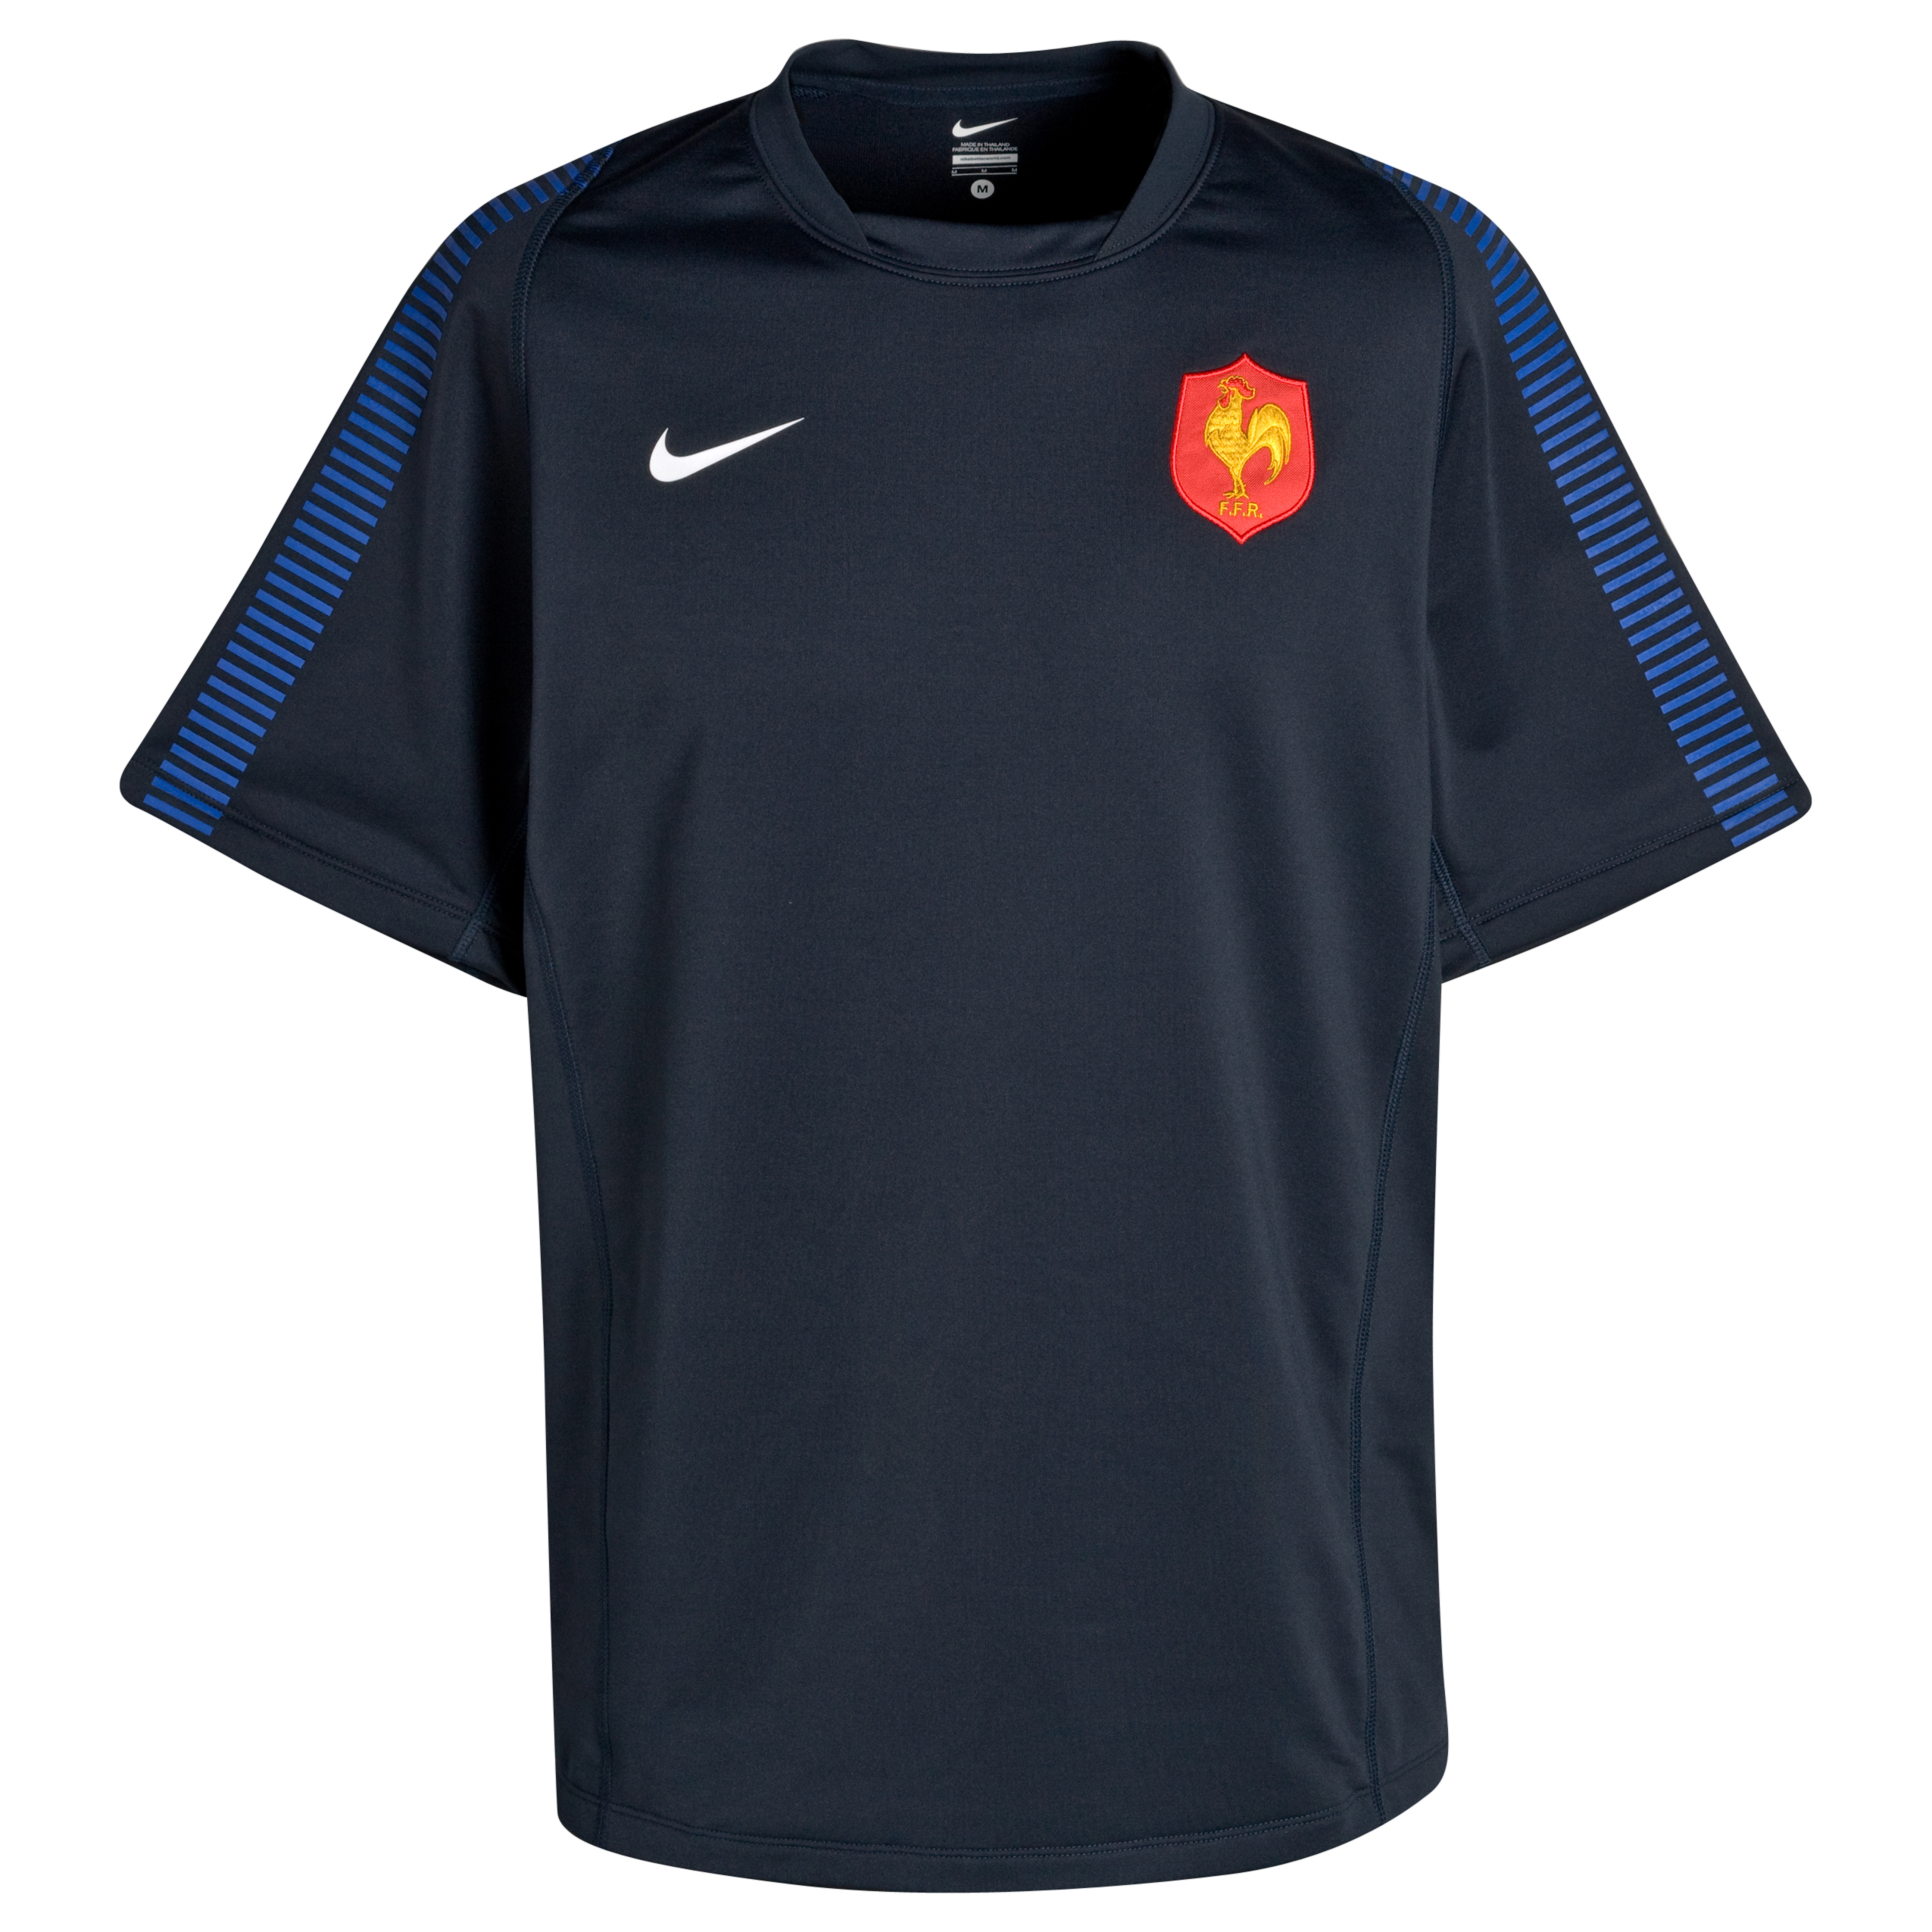 France Rugby Training Jersey - Old Royal/Dark Obsidian. for 30€